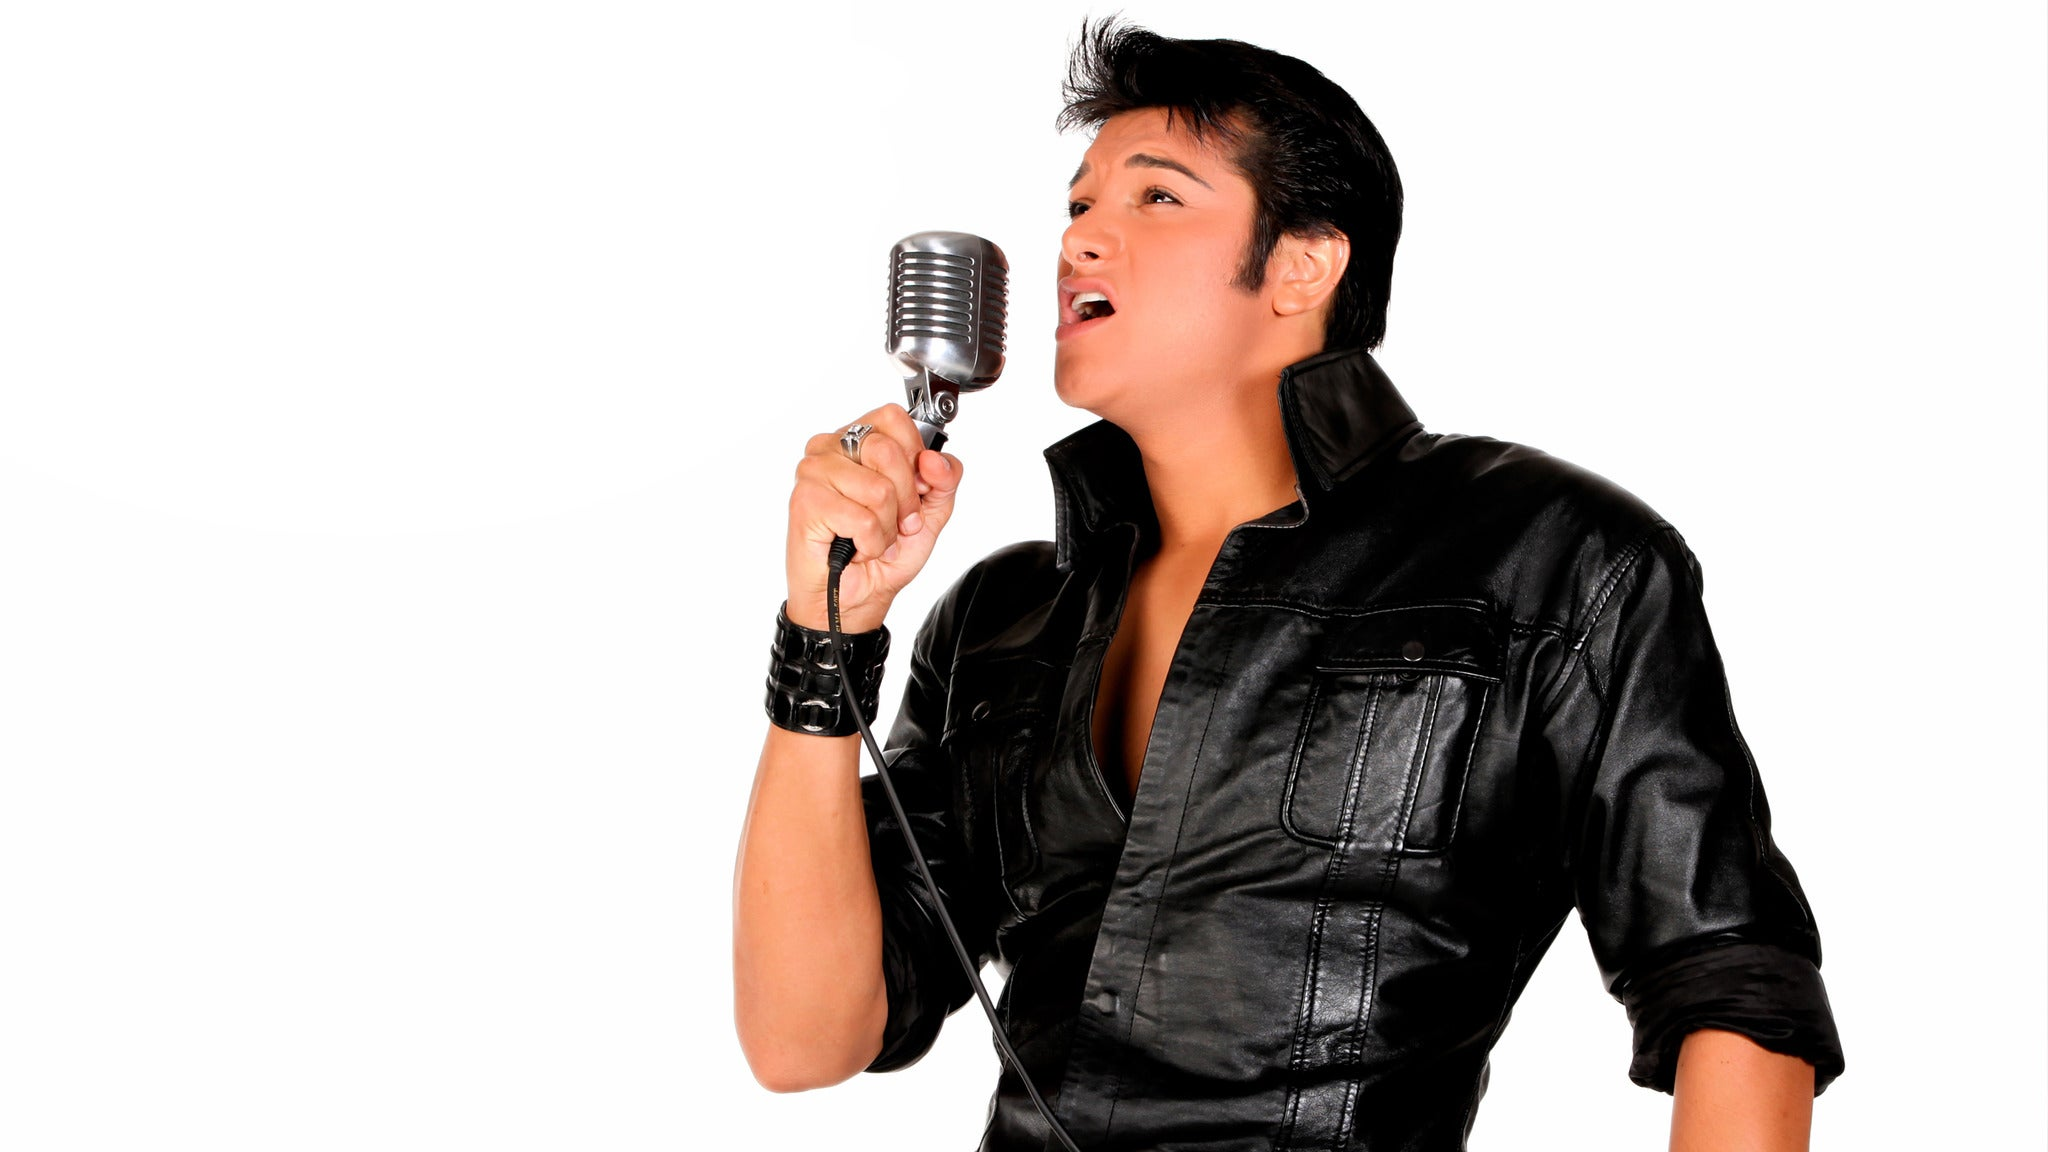 Joseph Hall's Elvis Rock 'N' Remember Tribute